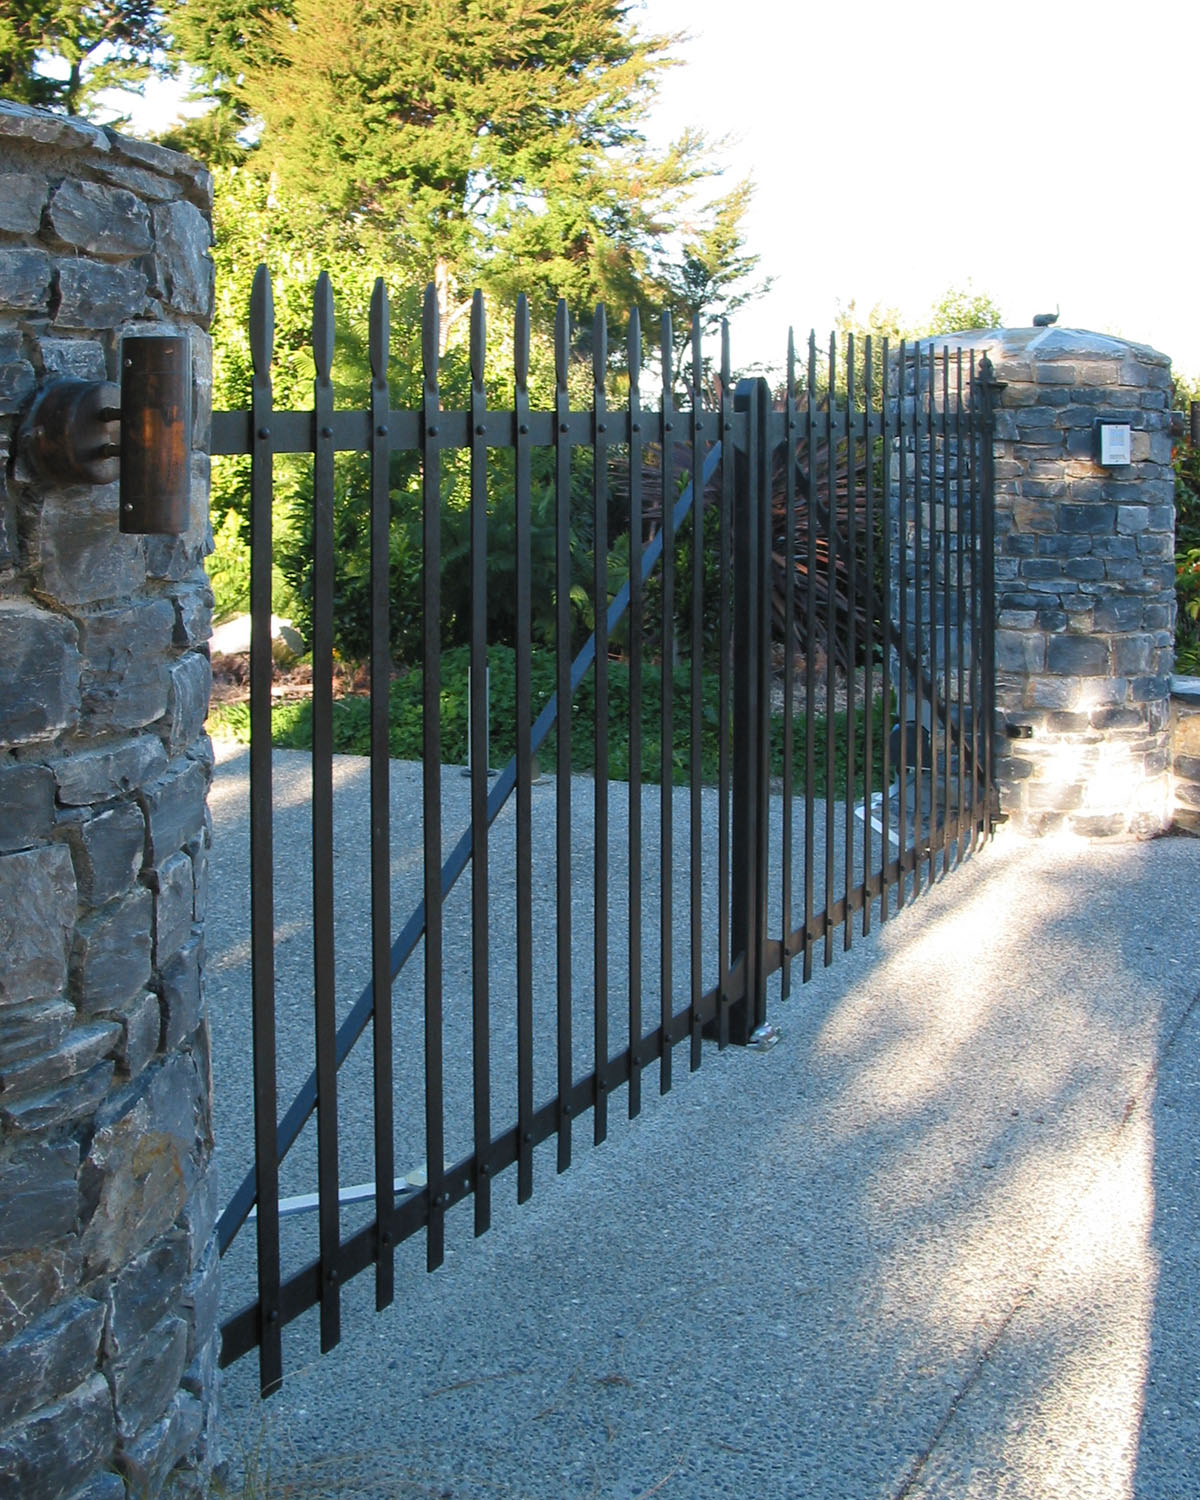 Riveted wrought iron driveway gates